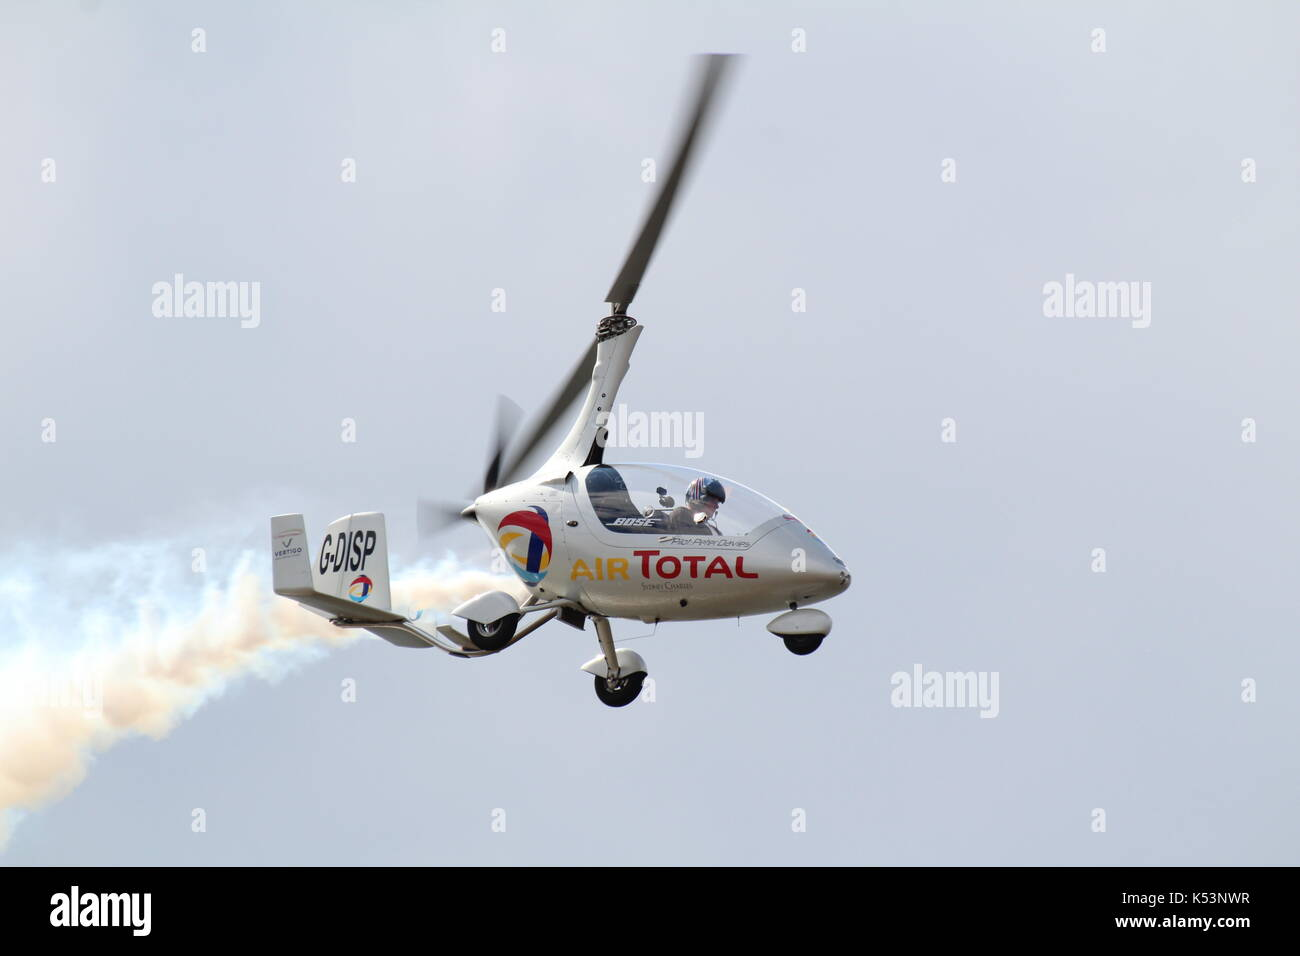 G-DISP, a RotorSport UK Calidus autogyro piloted by Peter Davies, performing at the Scottish International Airshow Stock Photo